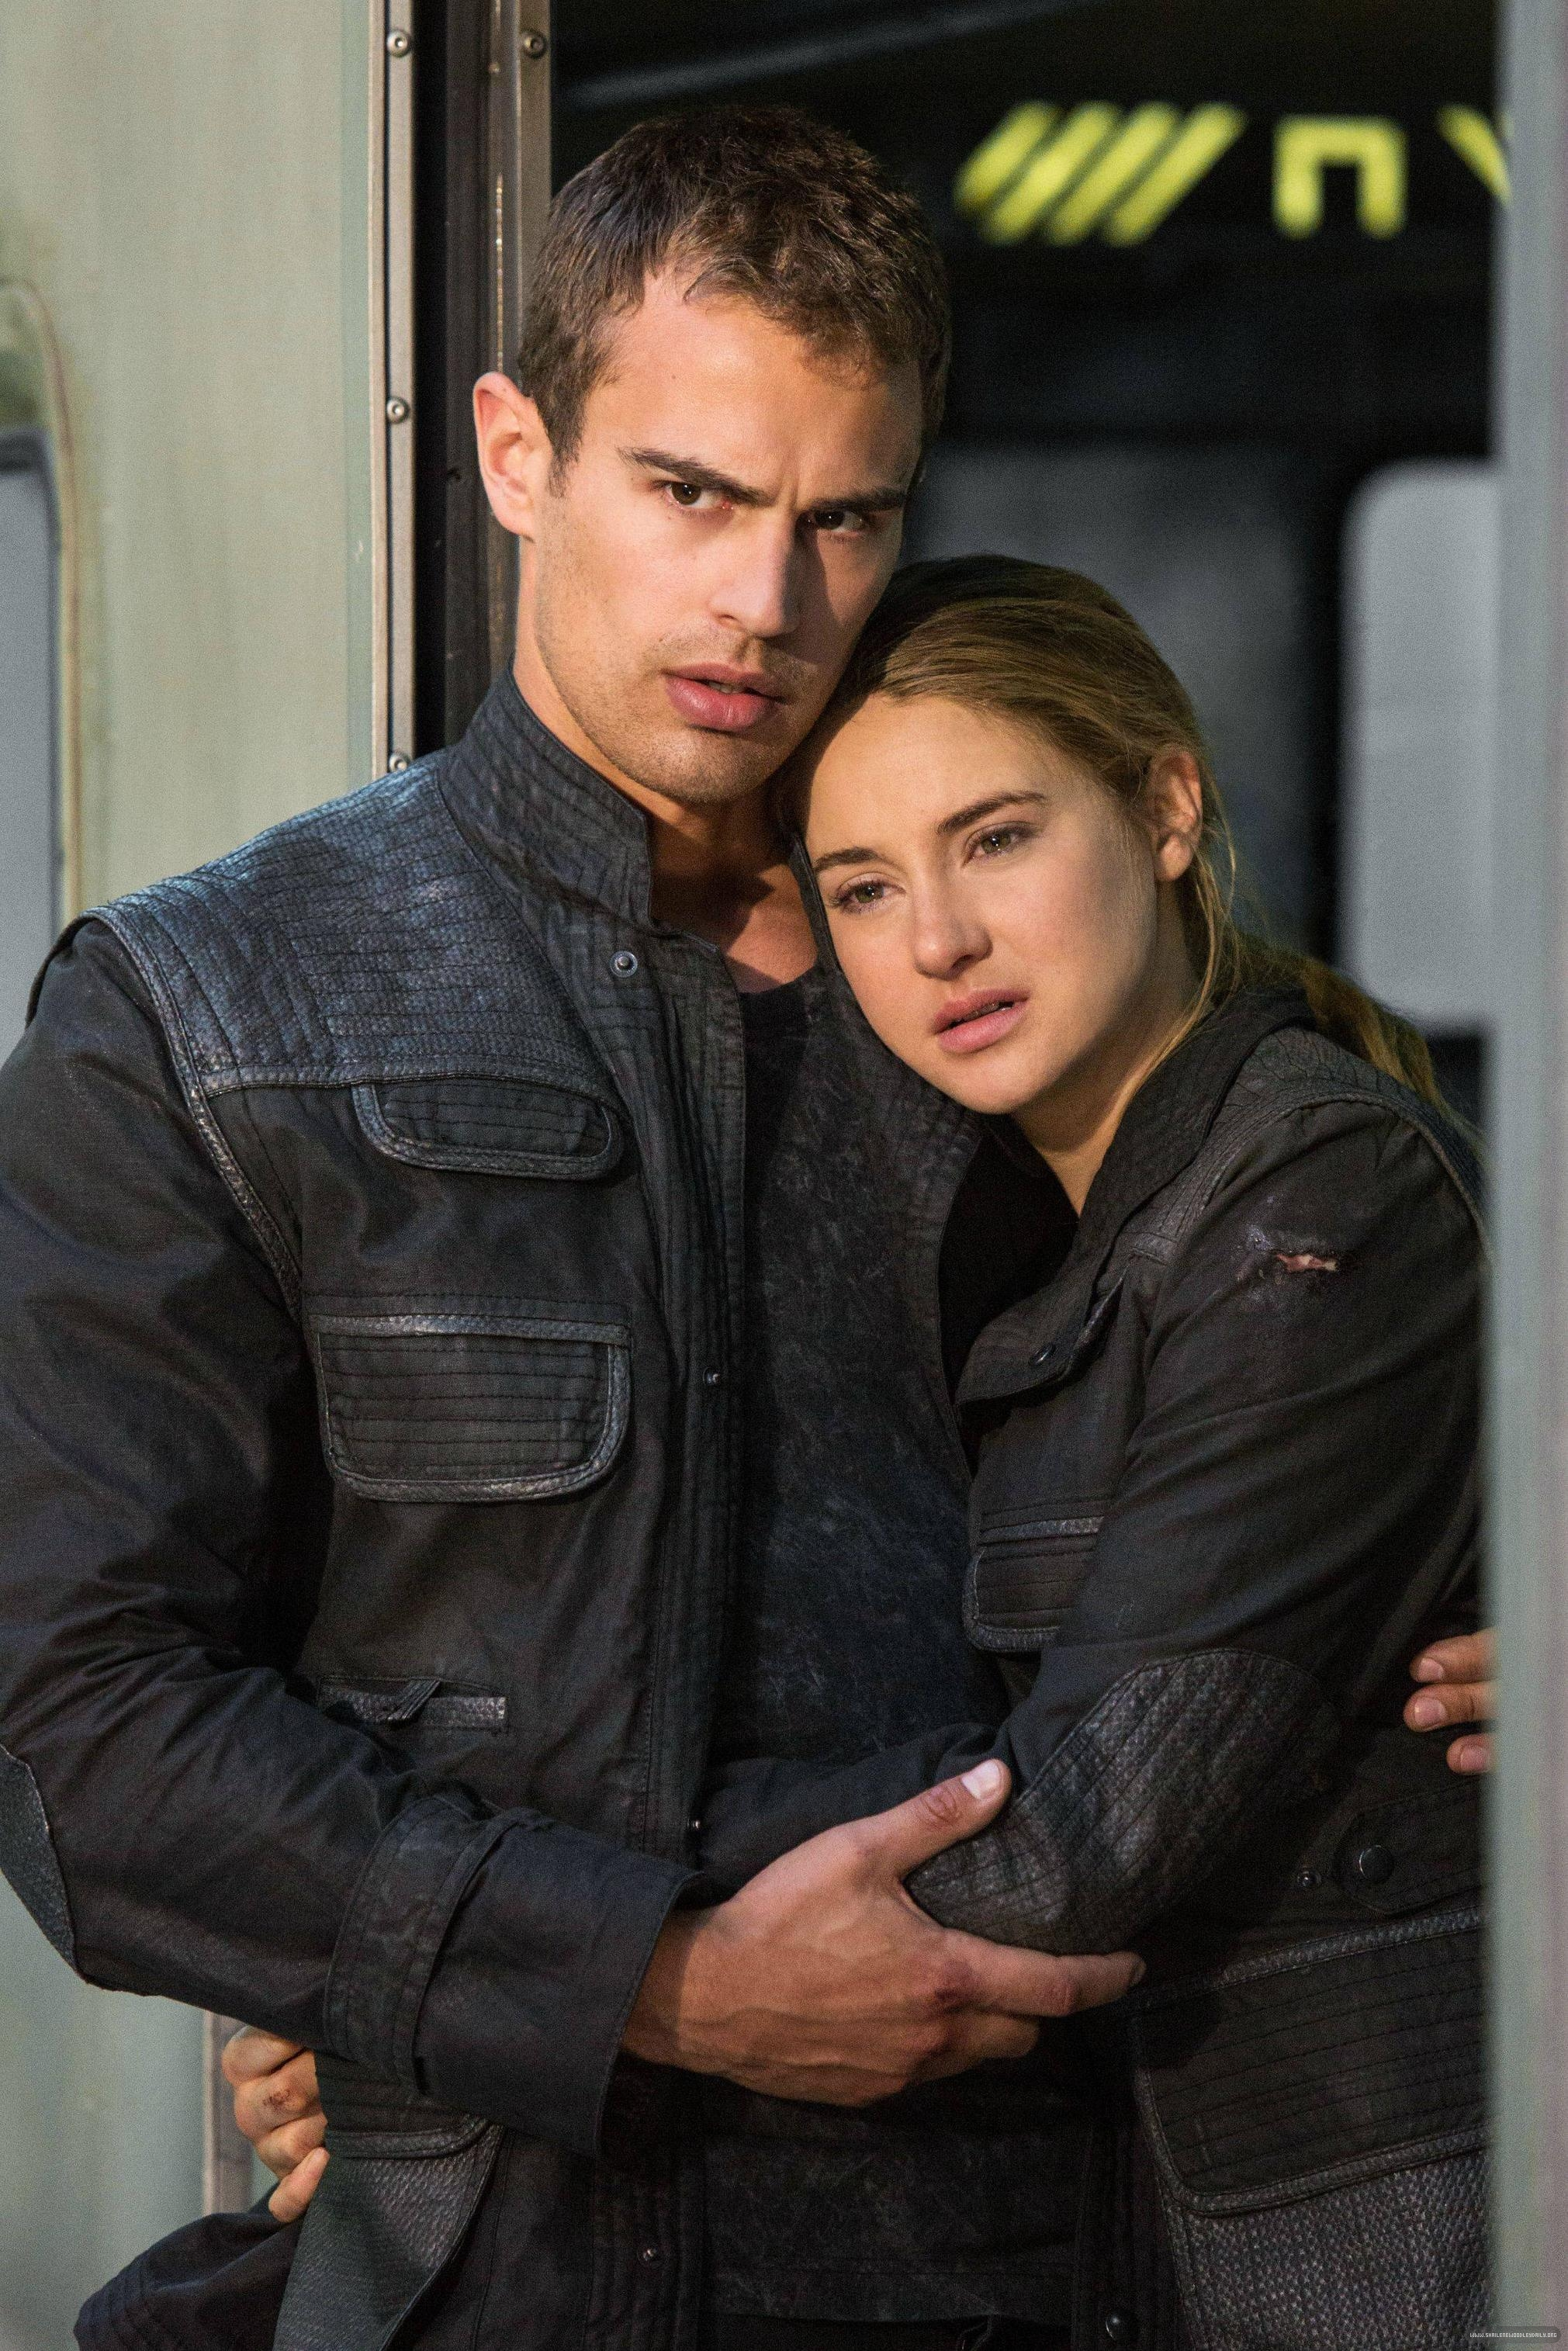 Movie Still - Tris and Four Photo (37365621) - Fanpop